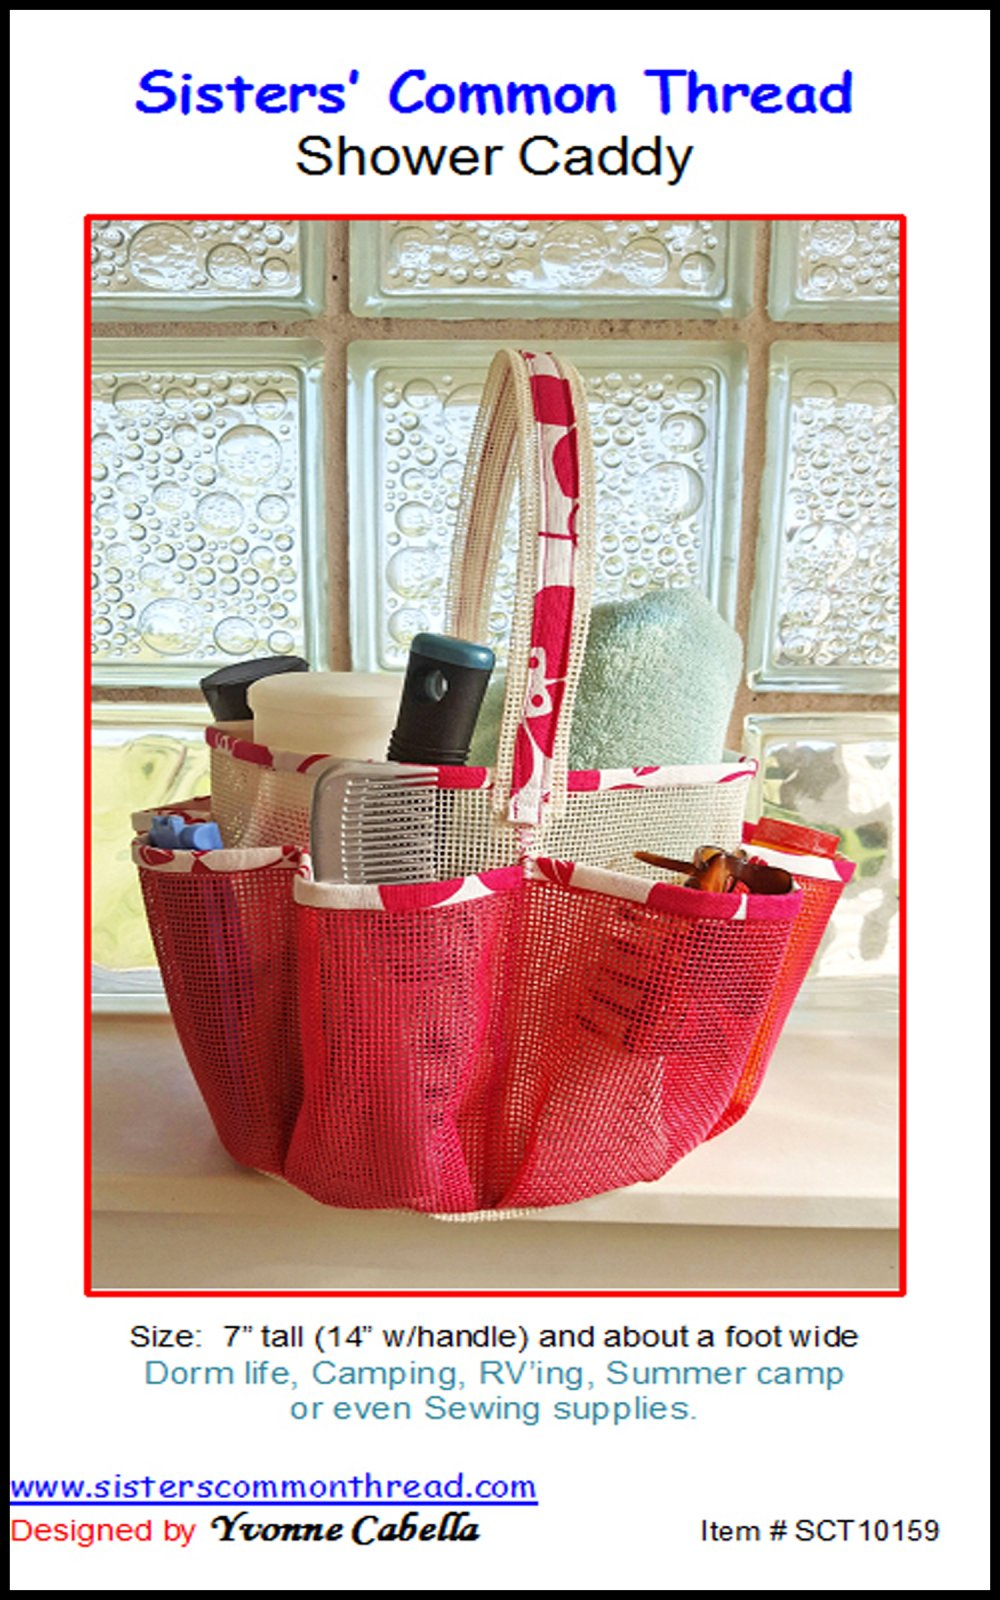 Shower Caddy Pattern